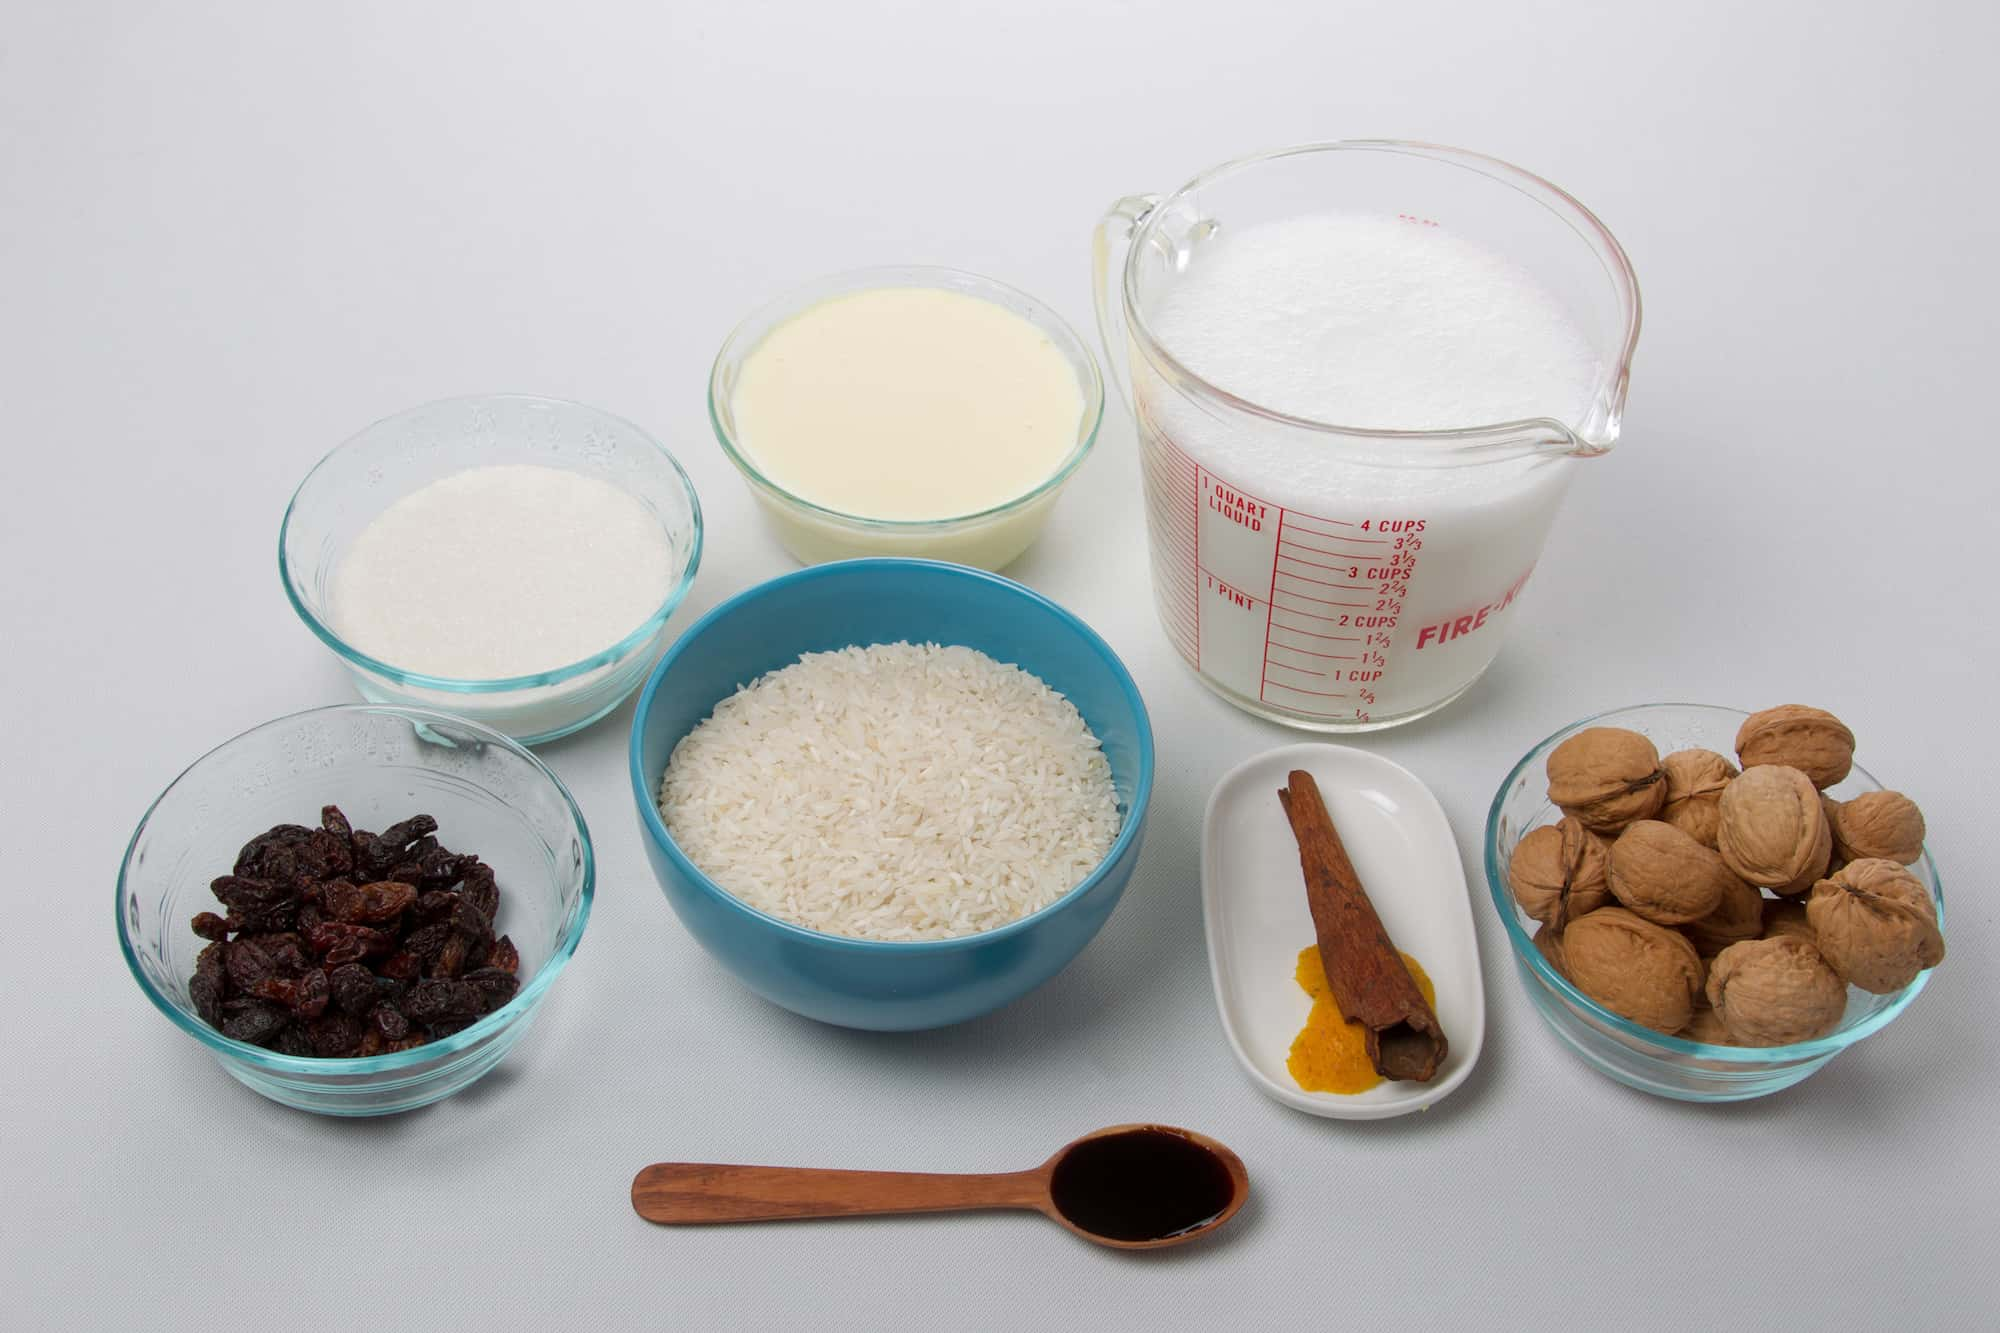 Ingredients to make rice with milk by Thermomix